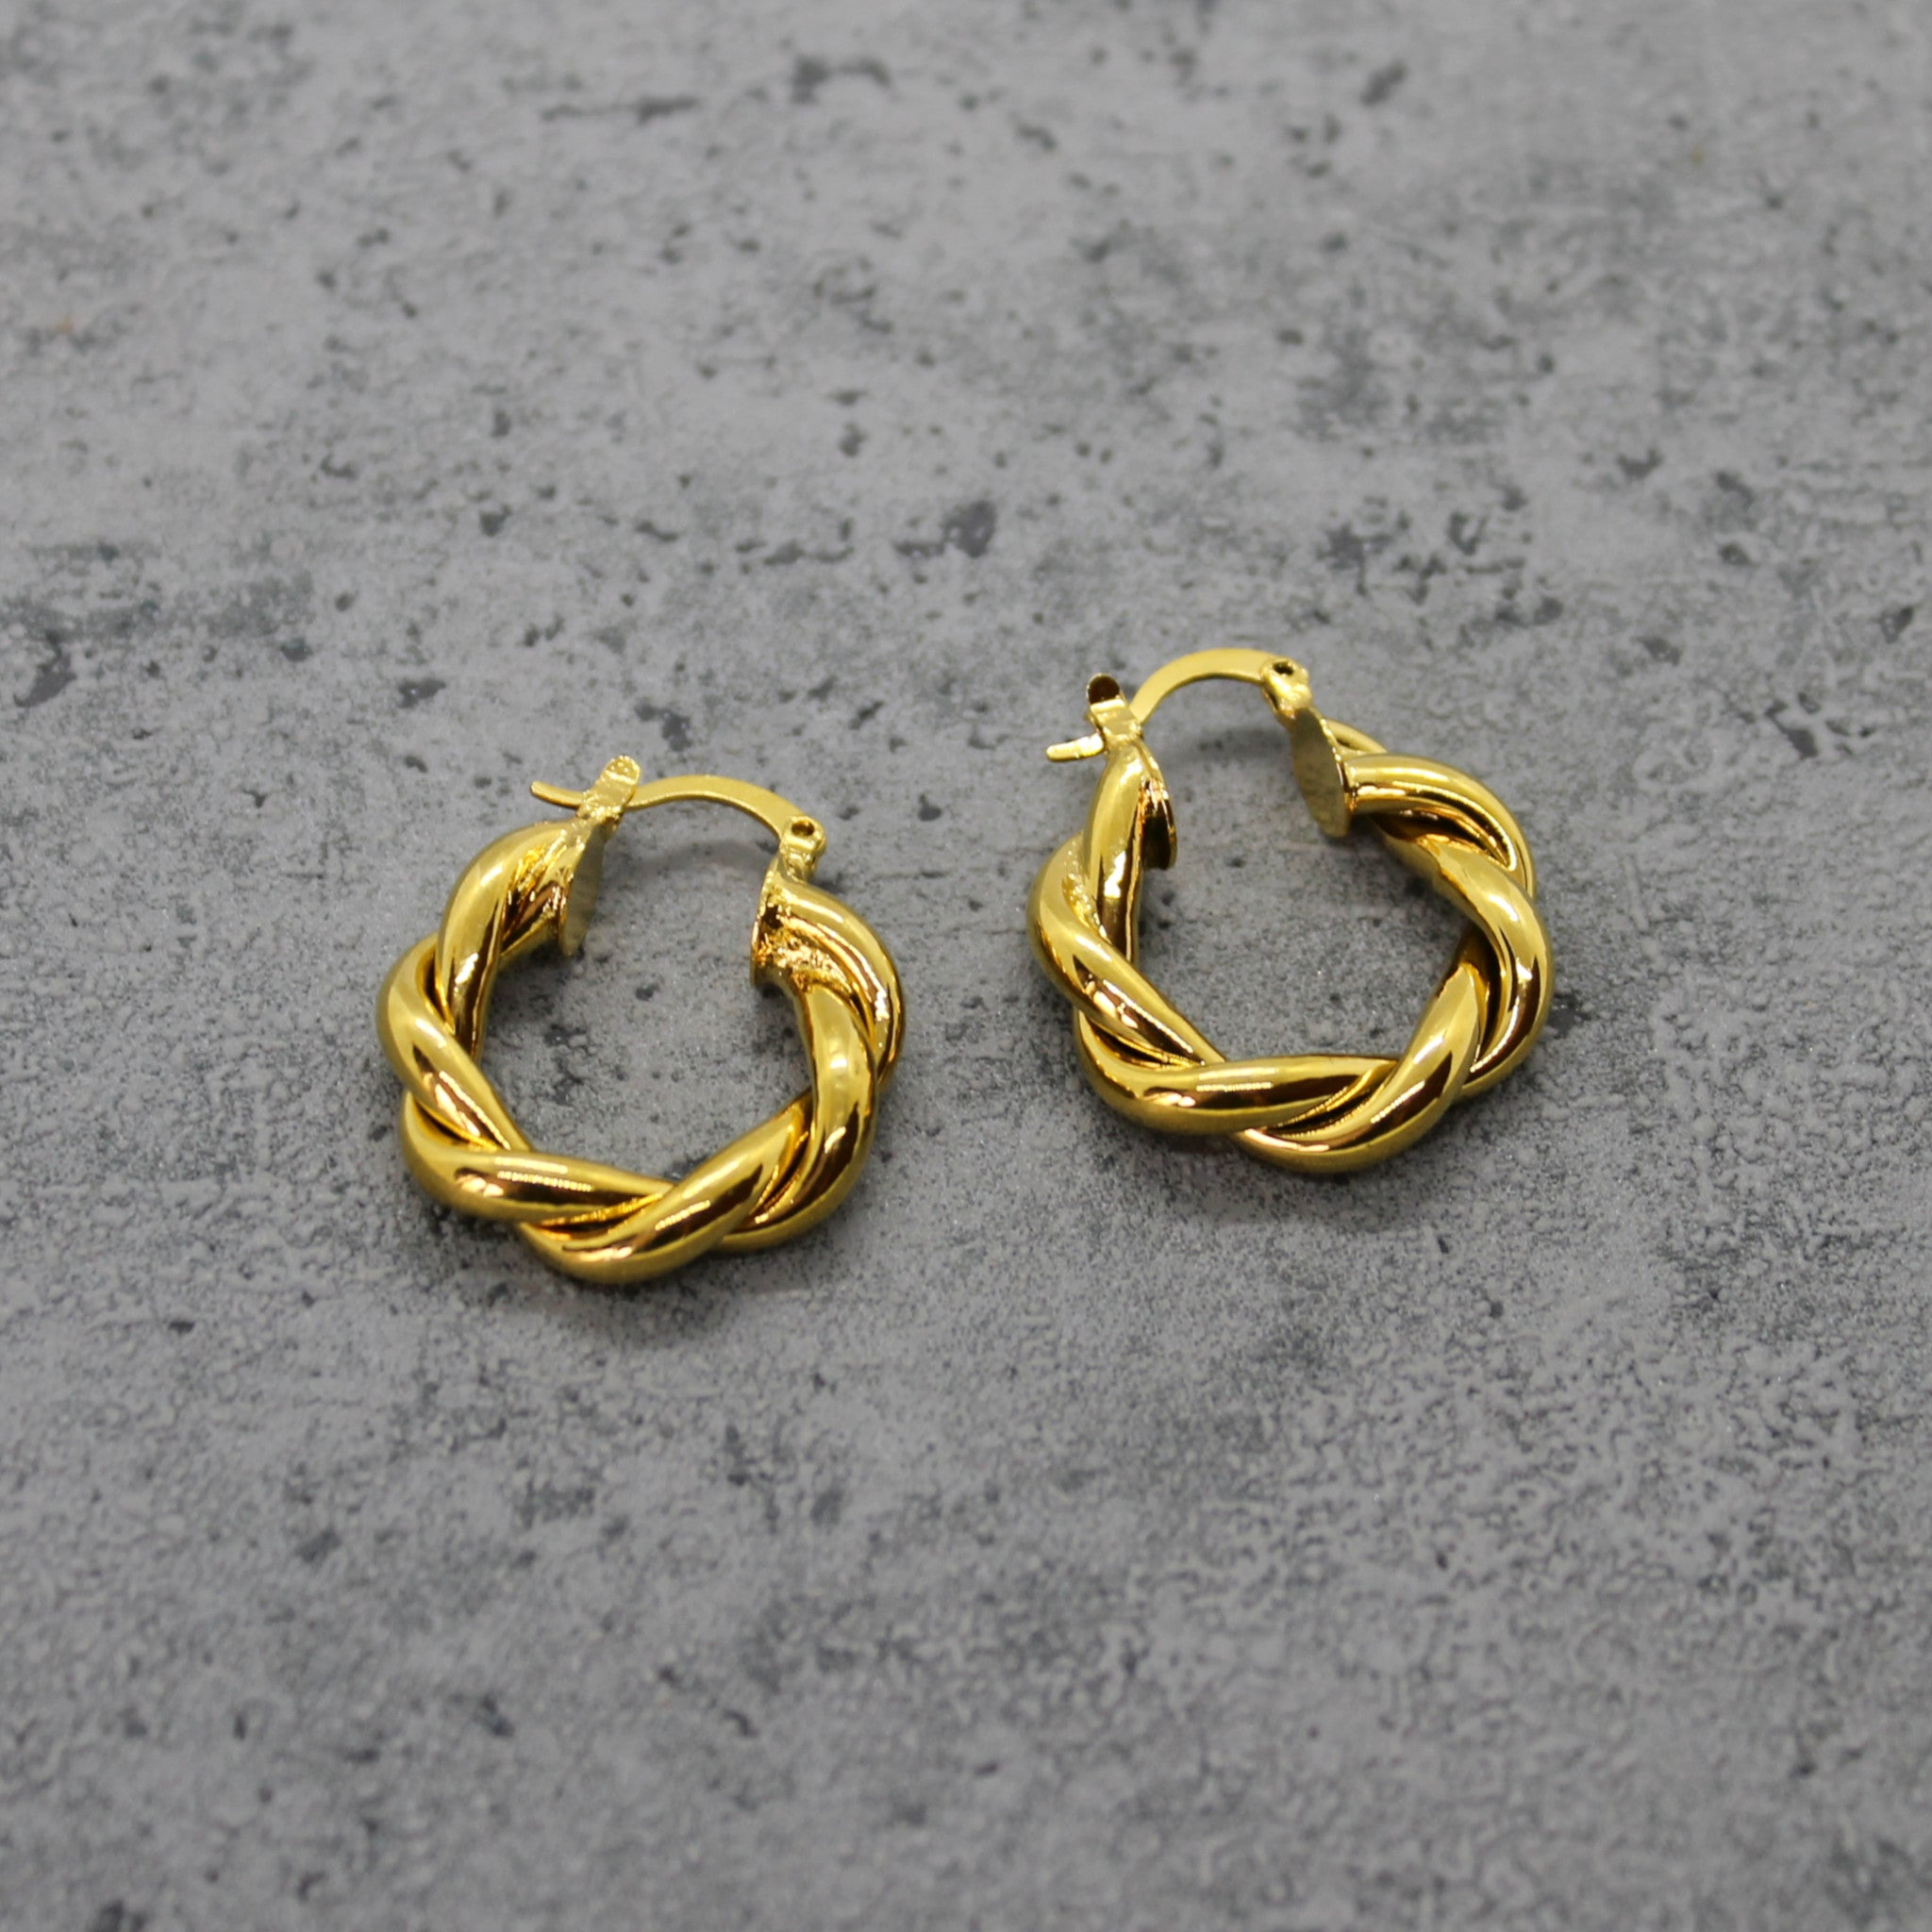 Twisted hoops - Mara studio